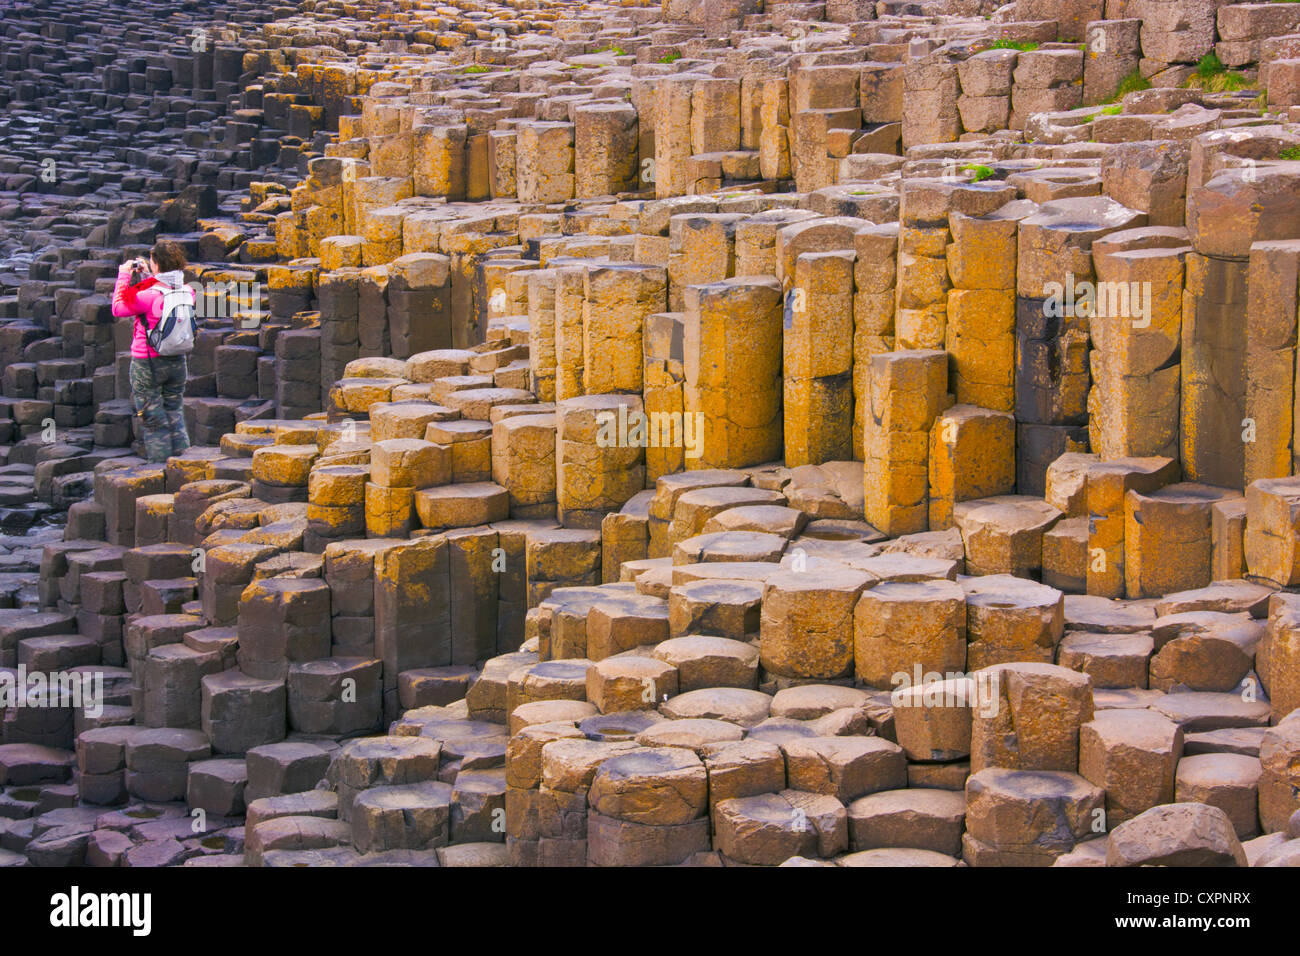 Tourist photographing Basalt Rock Formation, Giant's Causeway, County Antrim, Northern Ireland, United Kingdom, - Stock Image